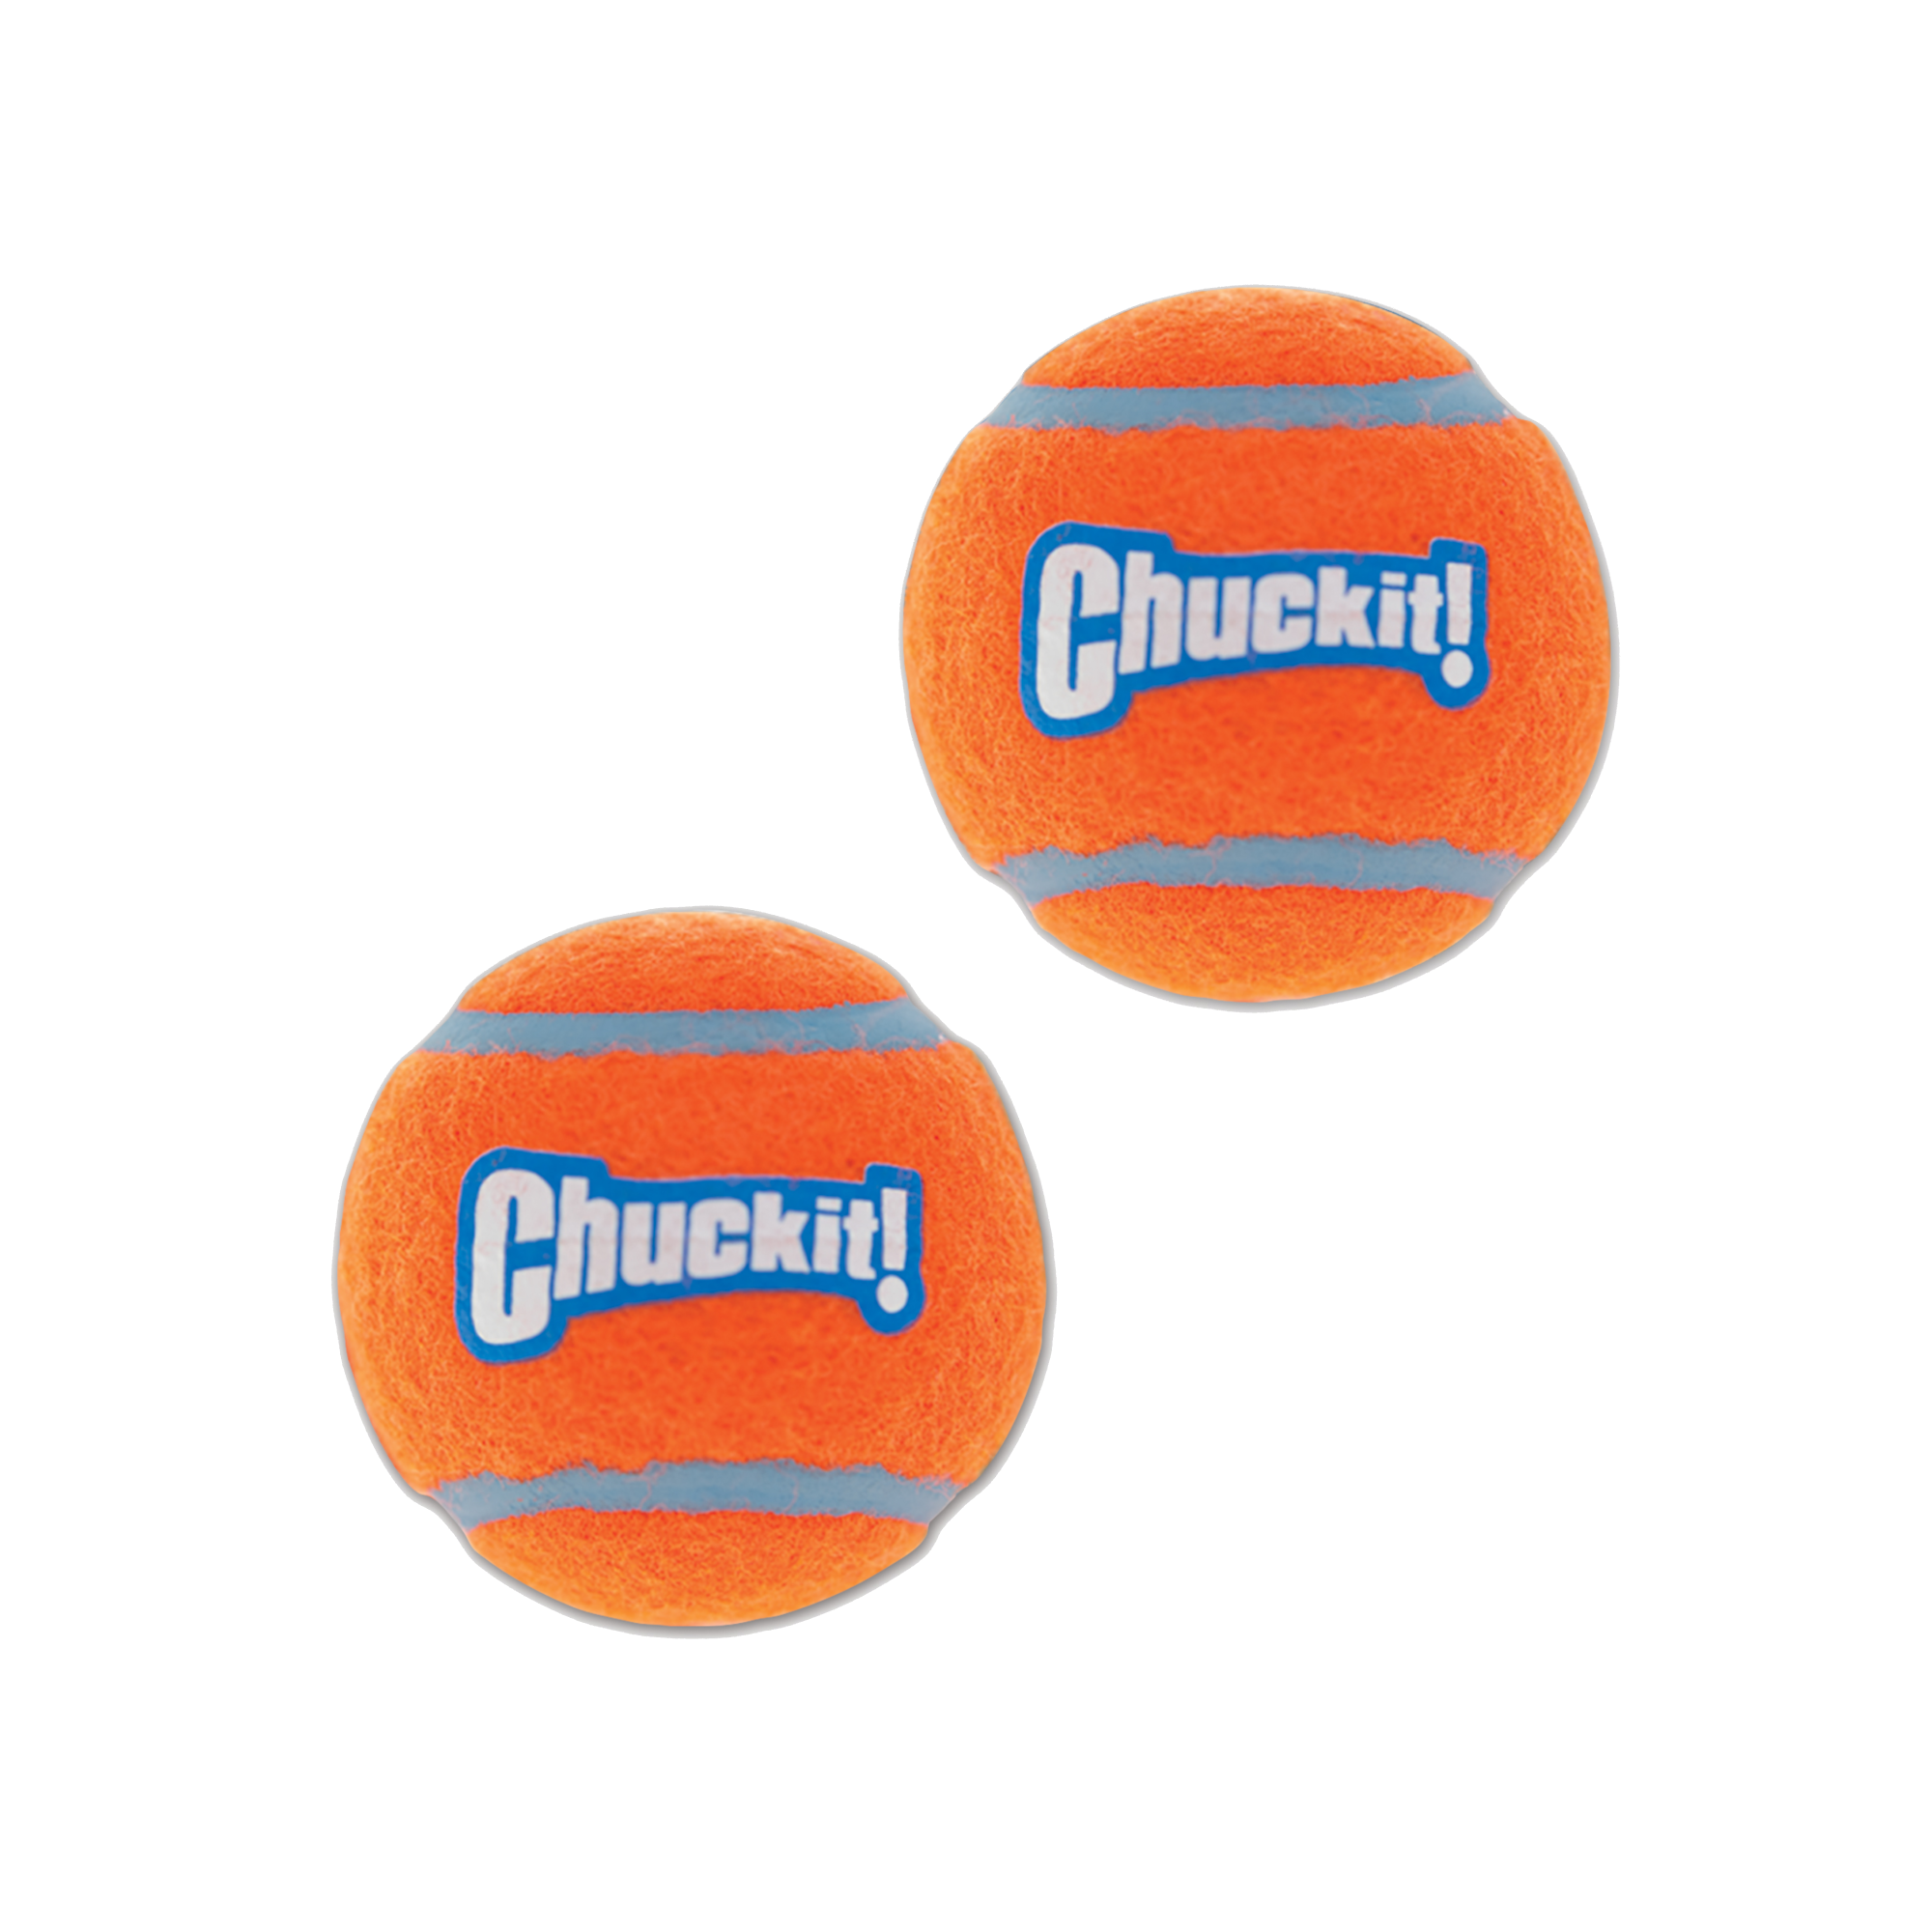 Tennis Ball - Chuckit